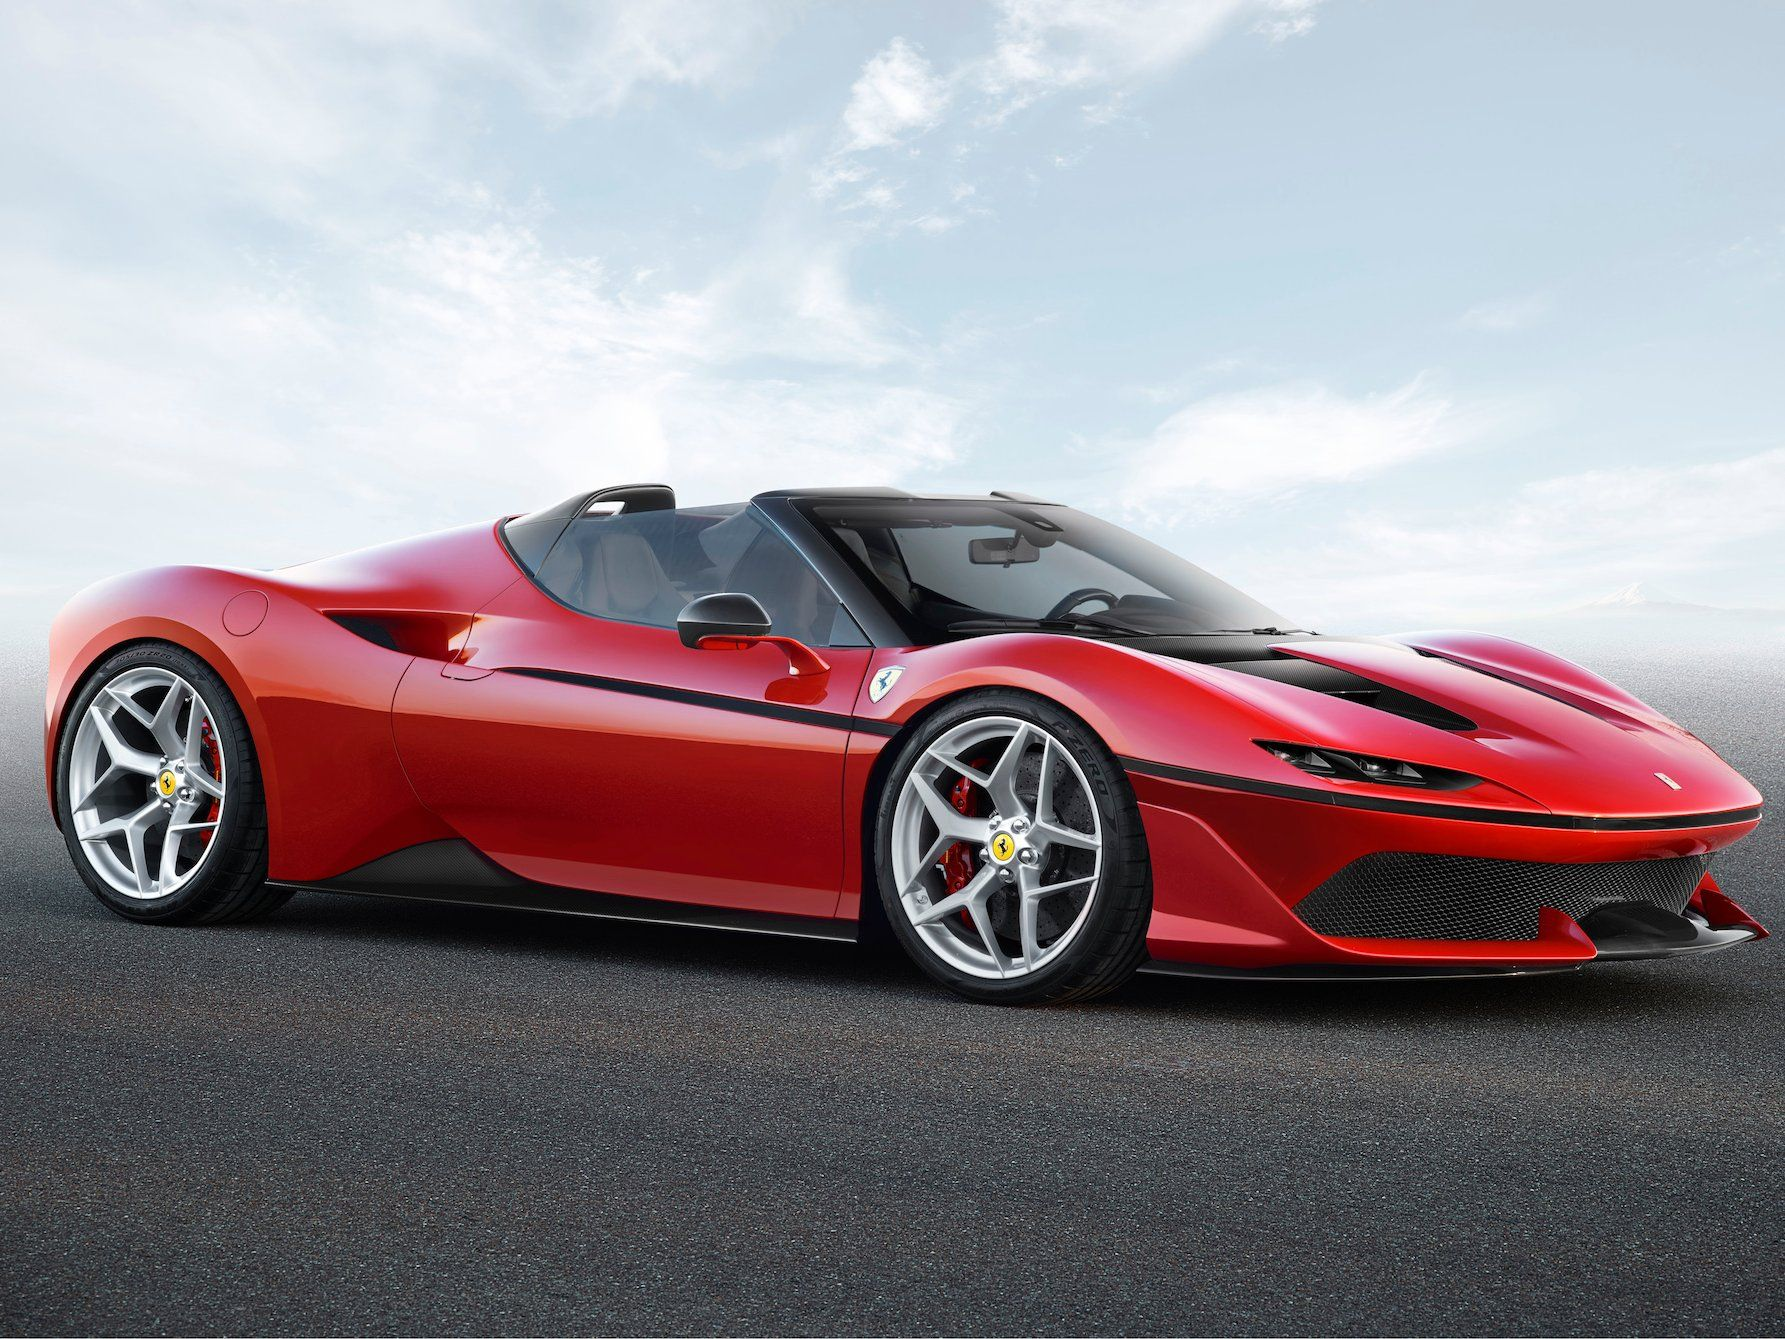 Ferrari S Newest Supercar Looks Absolutely Mesmerizing But It S Only Sold In One Country Ferrari Car New Ferrari Super Cars